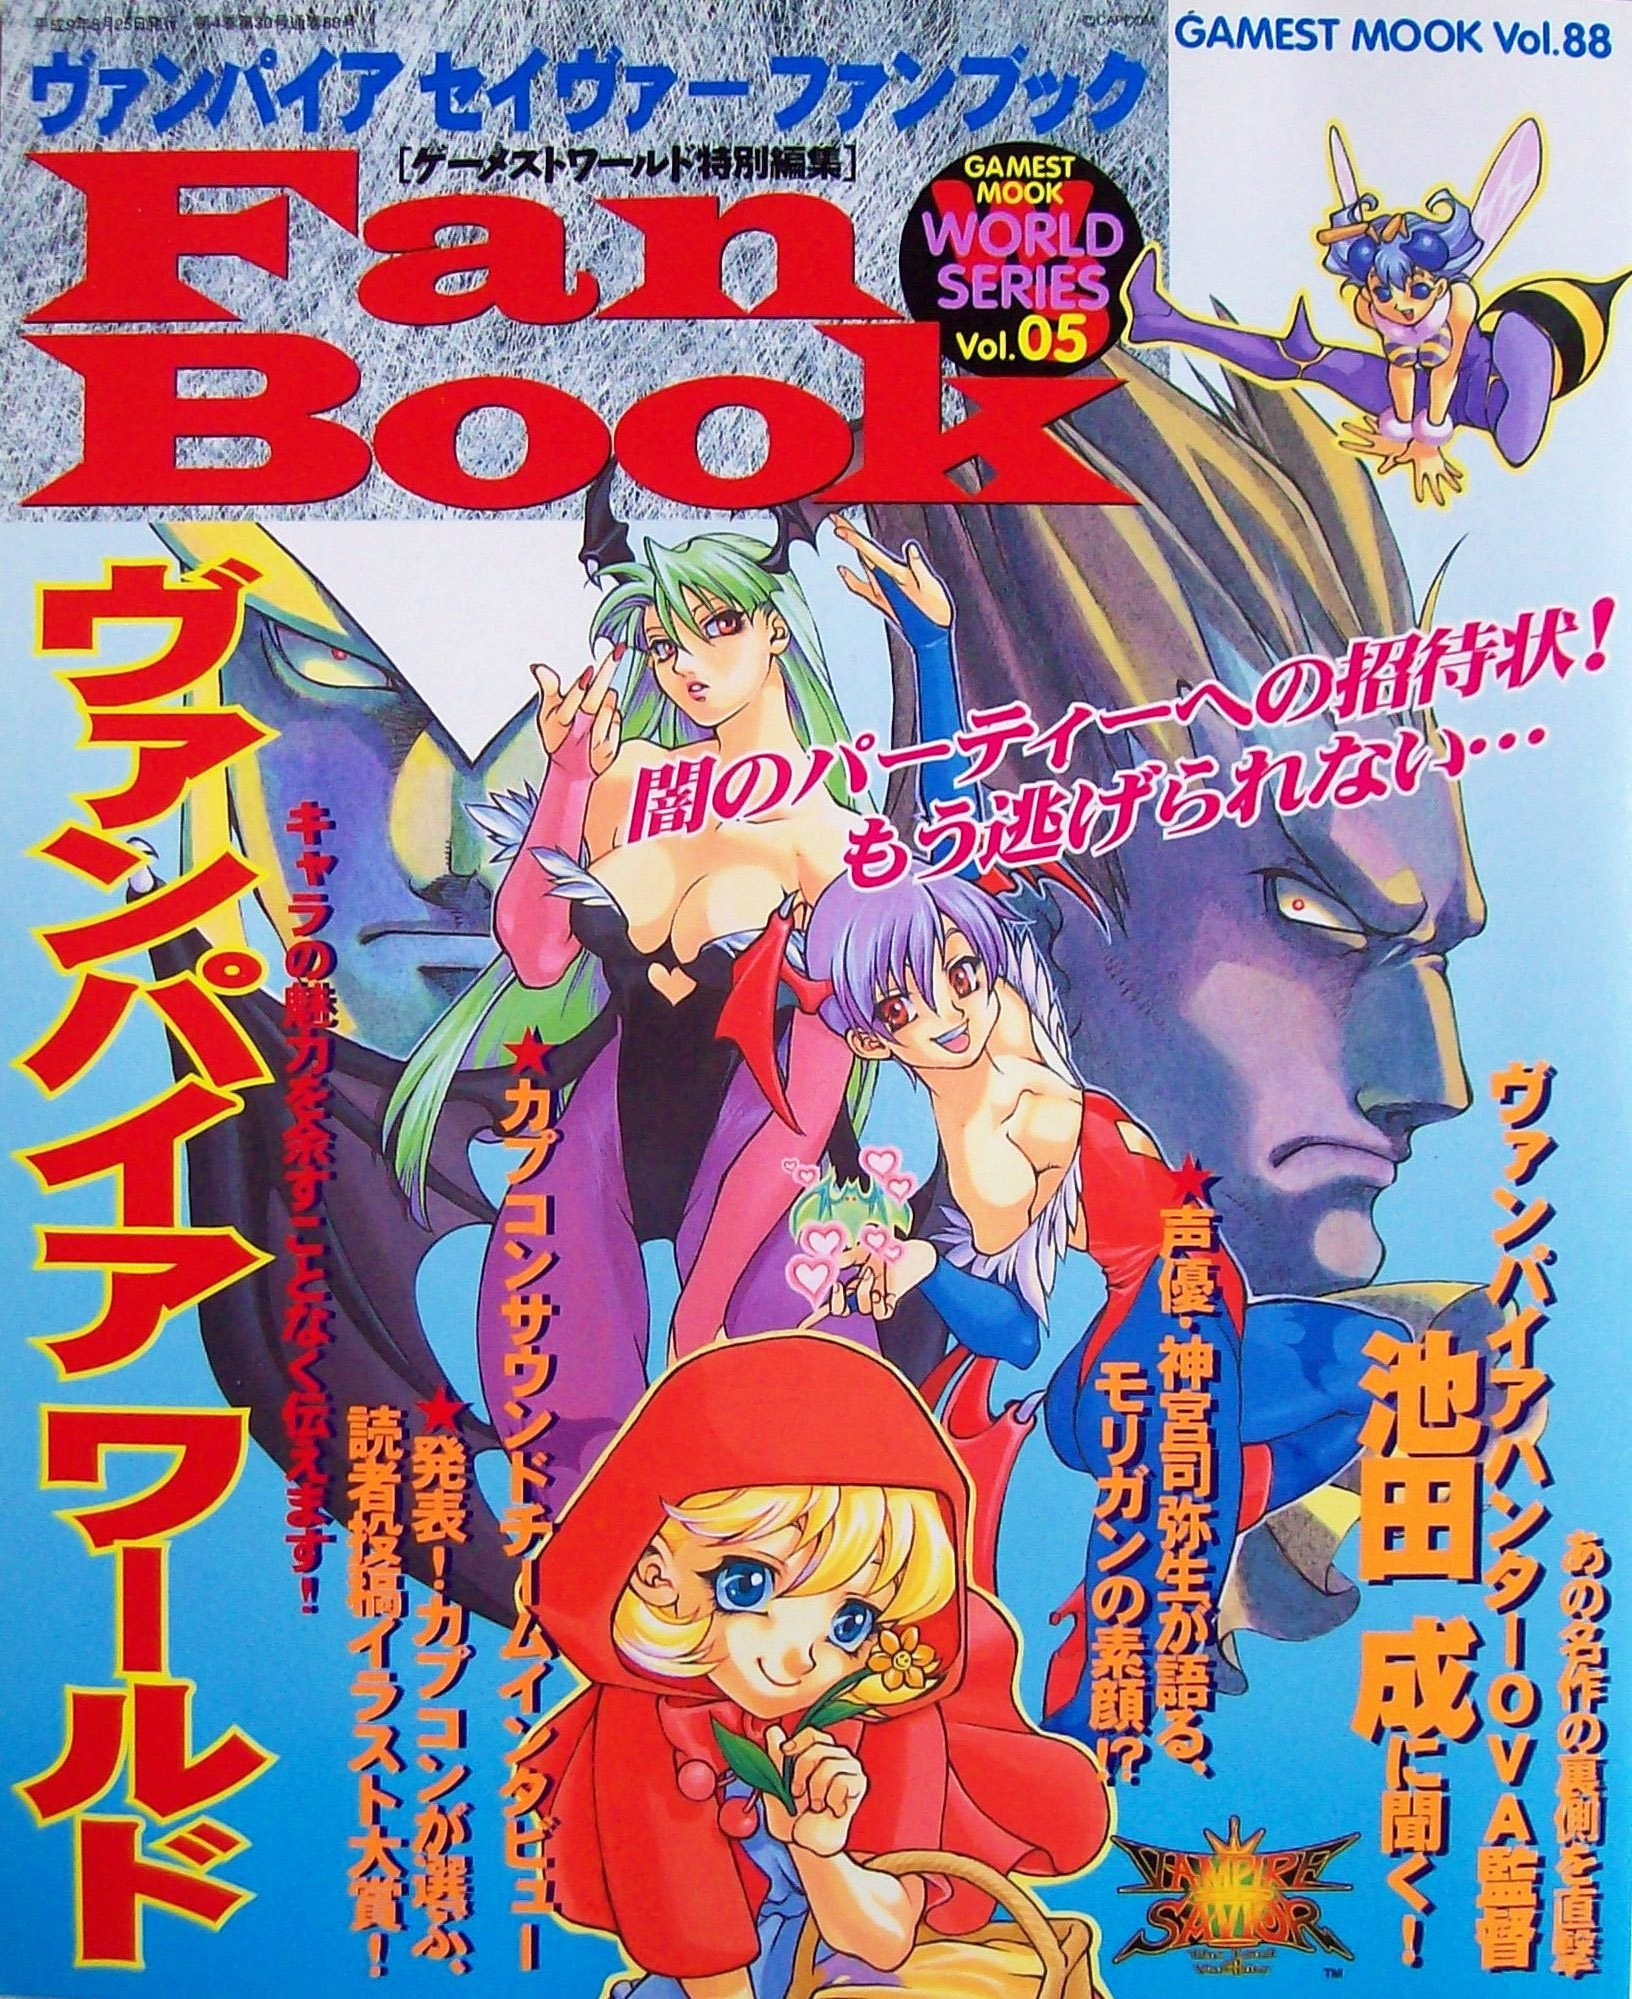 Vampire Savior Fan Book - Art and Reference Books